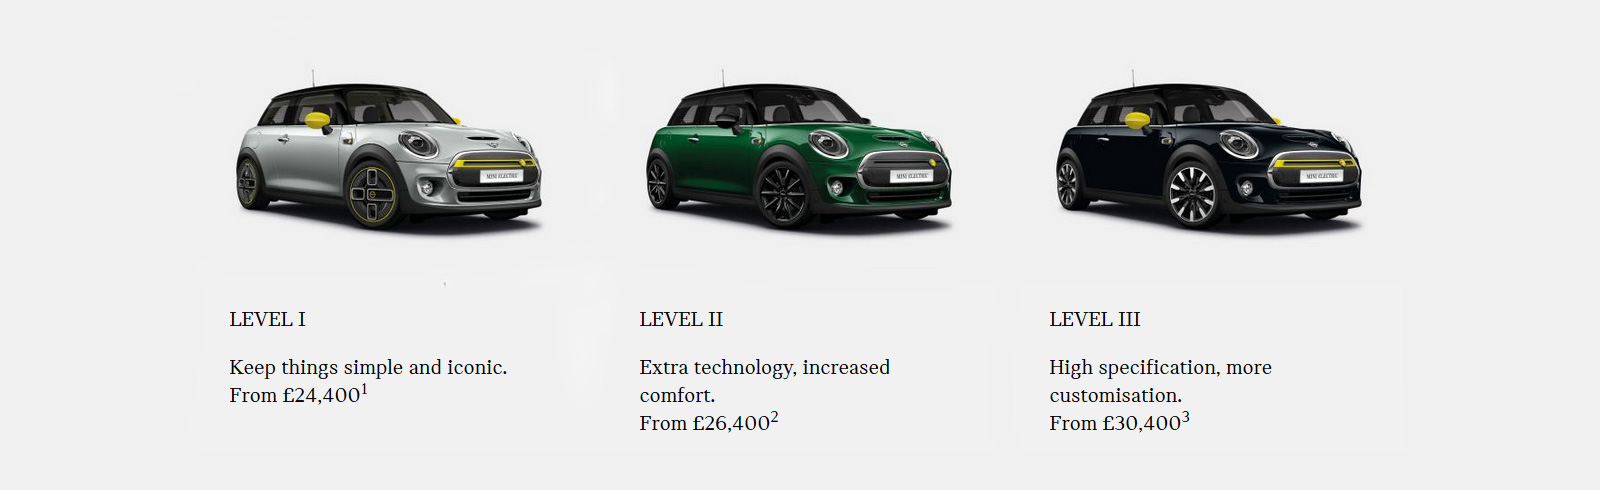 Pricing and trim levels for the MINI Cooper SE are announced